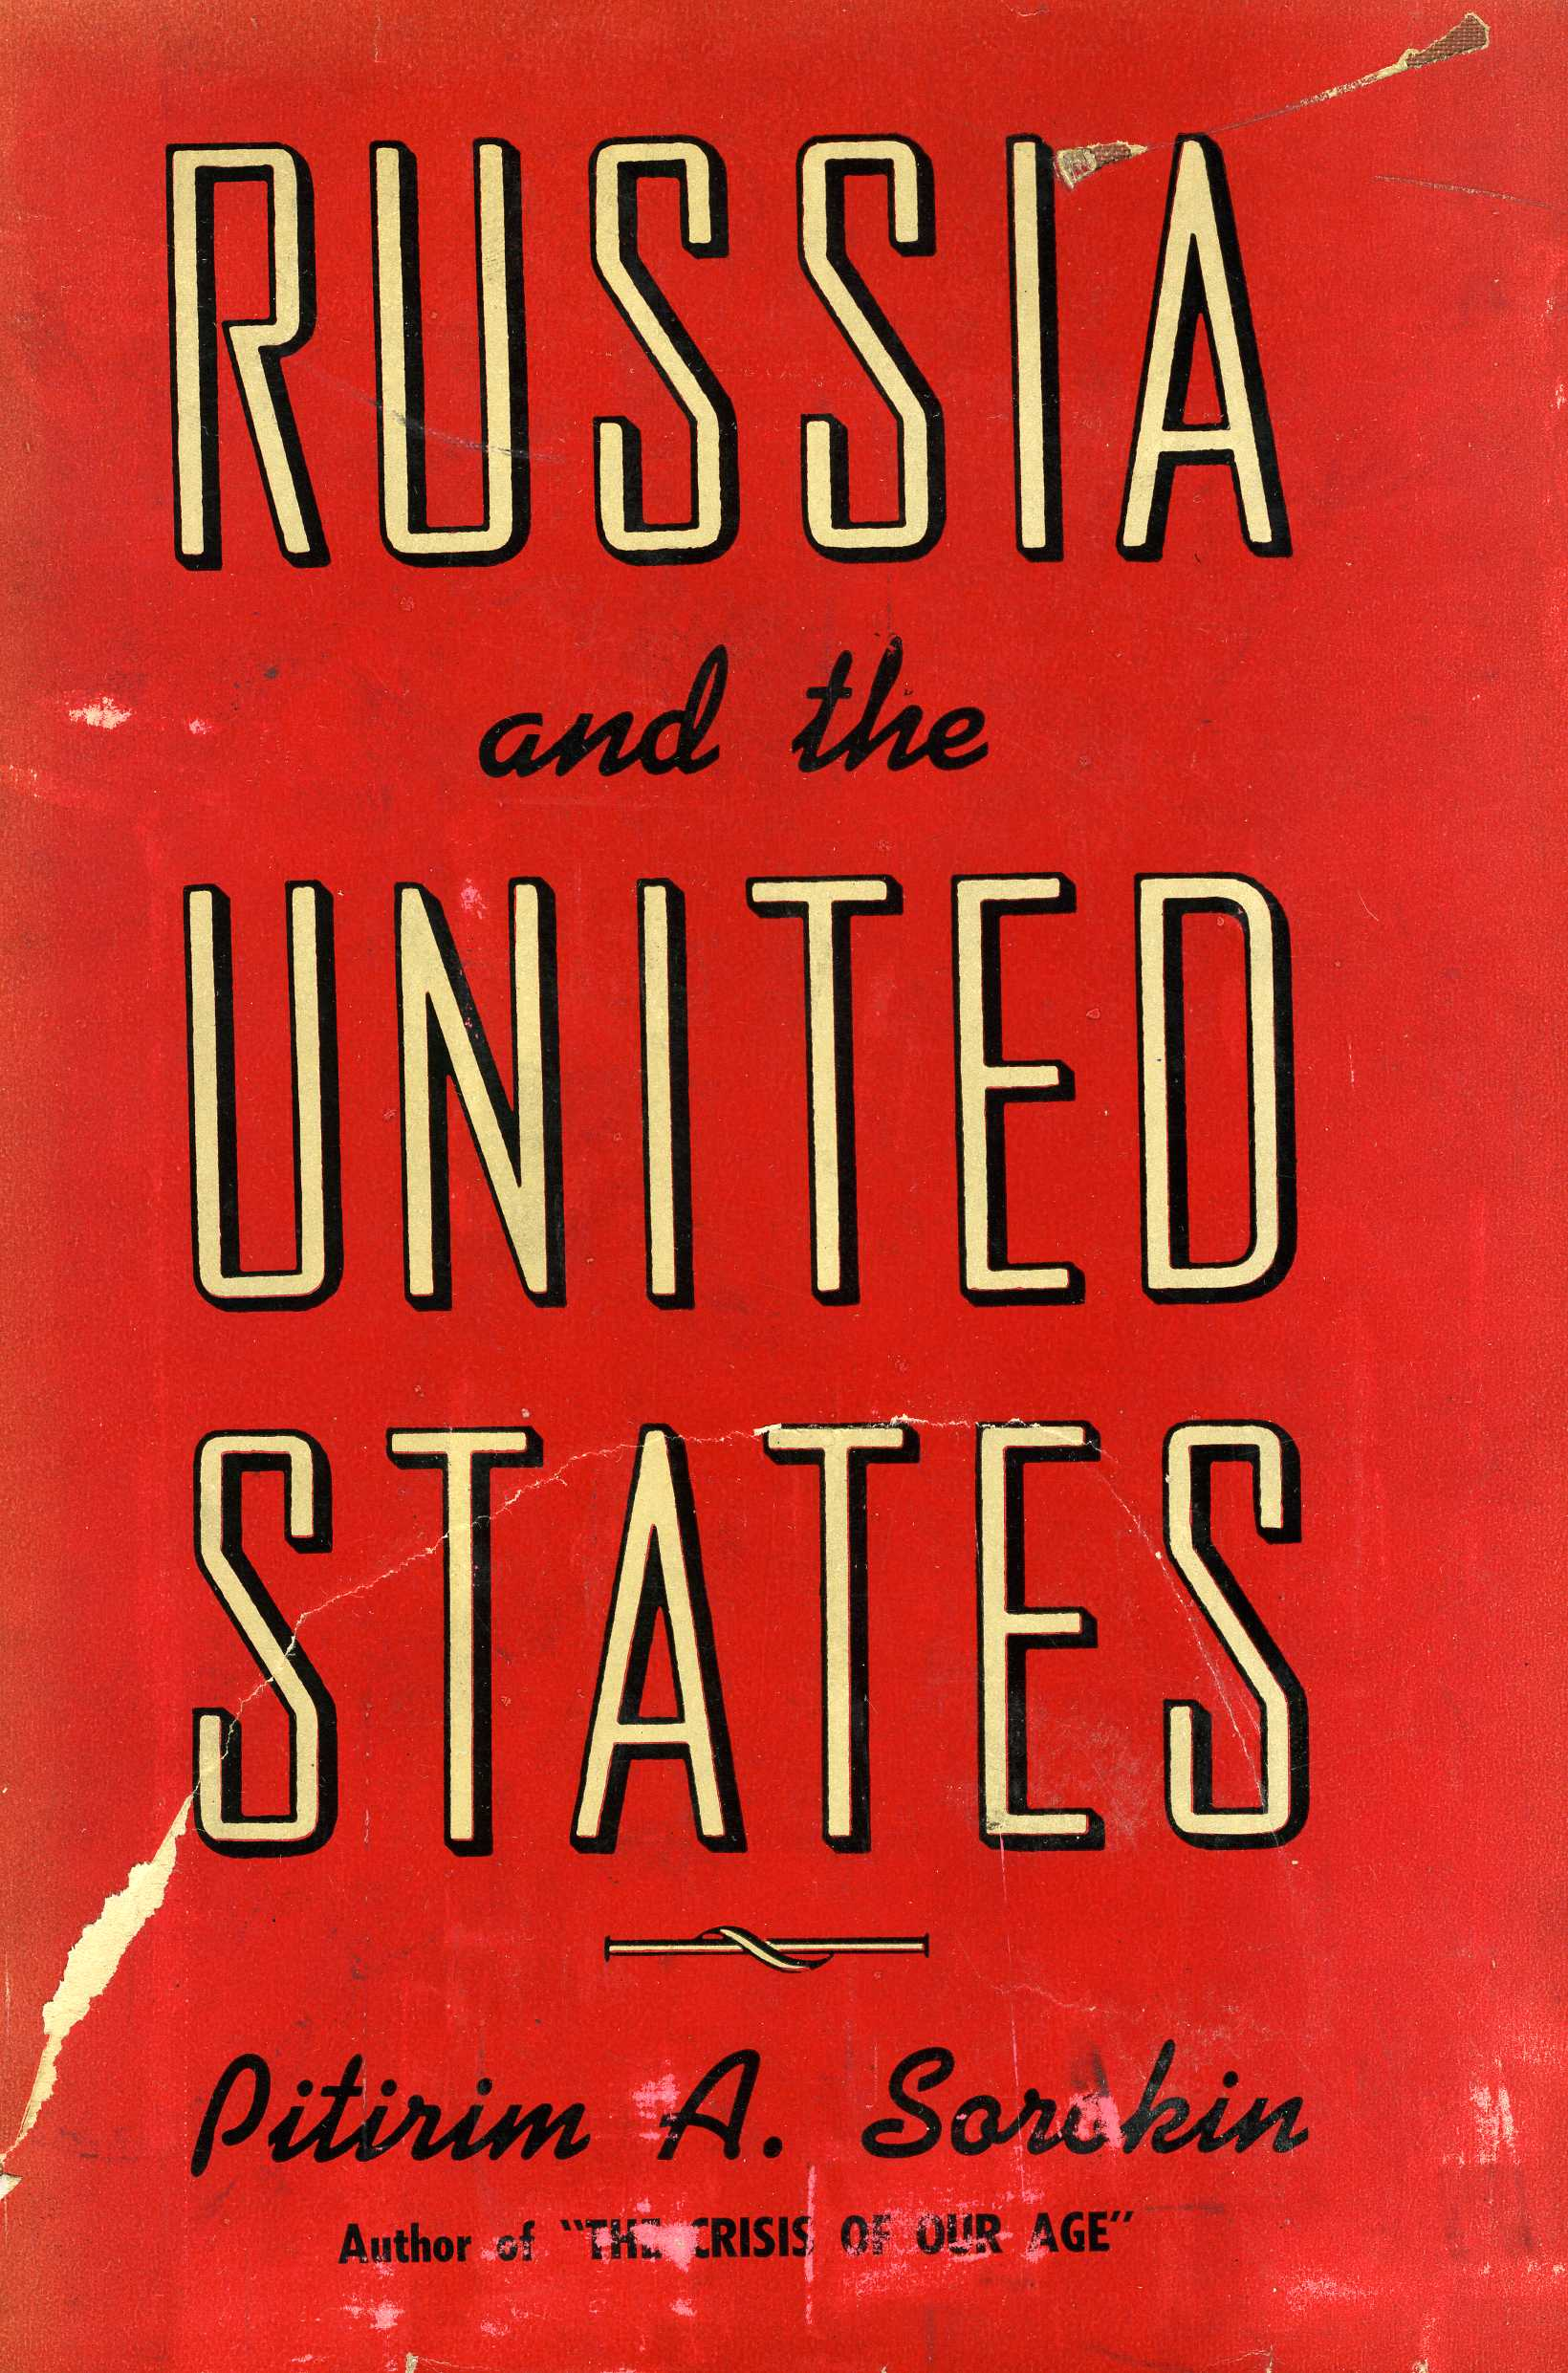 Russia and the US077.jpg